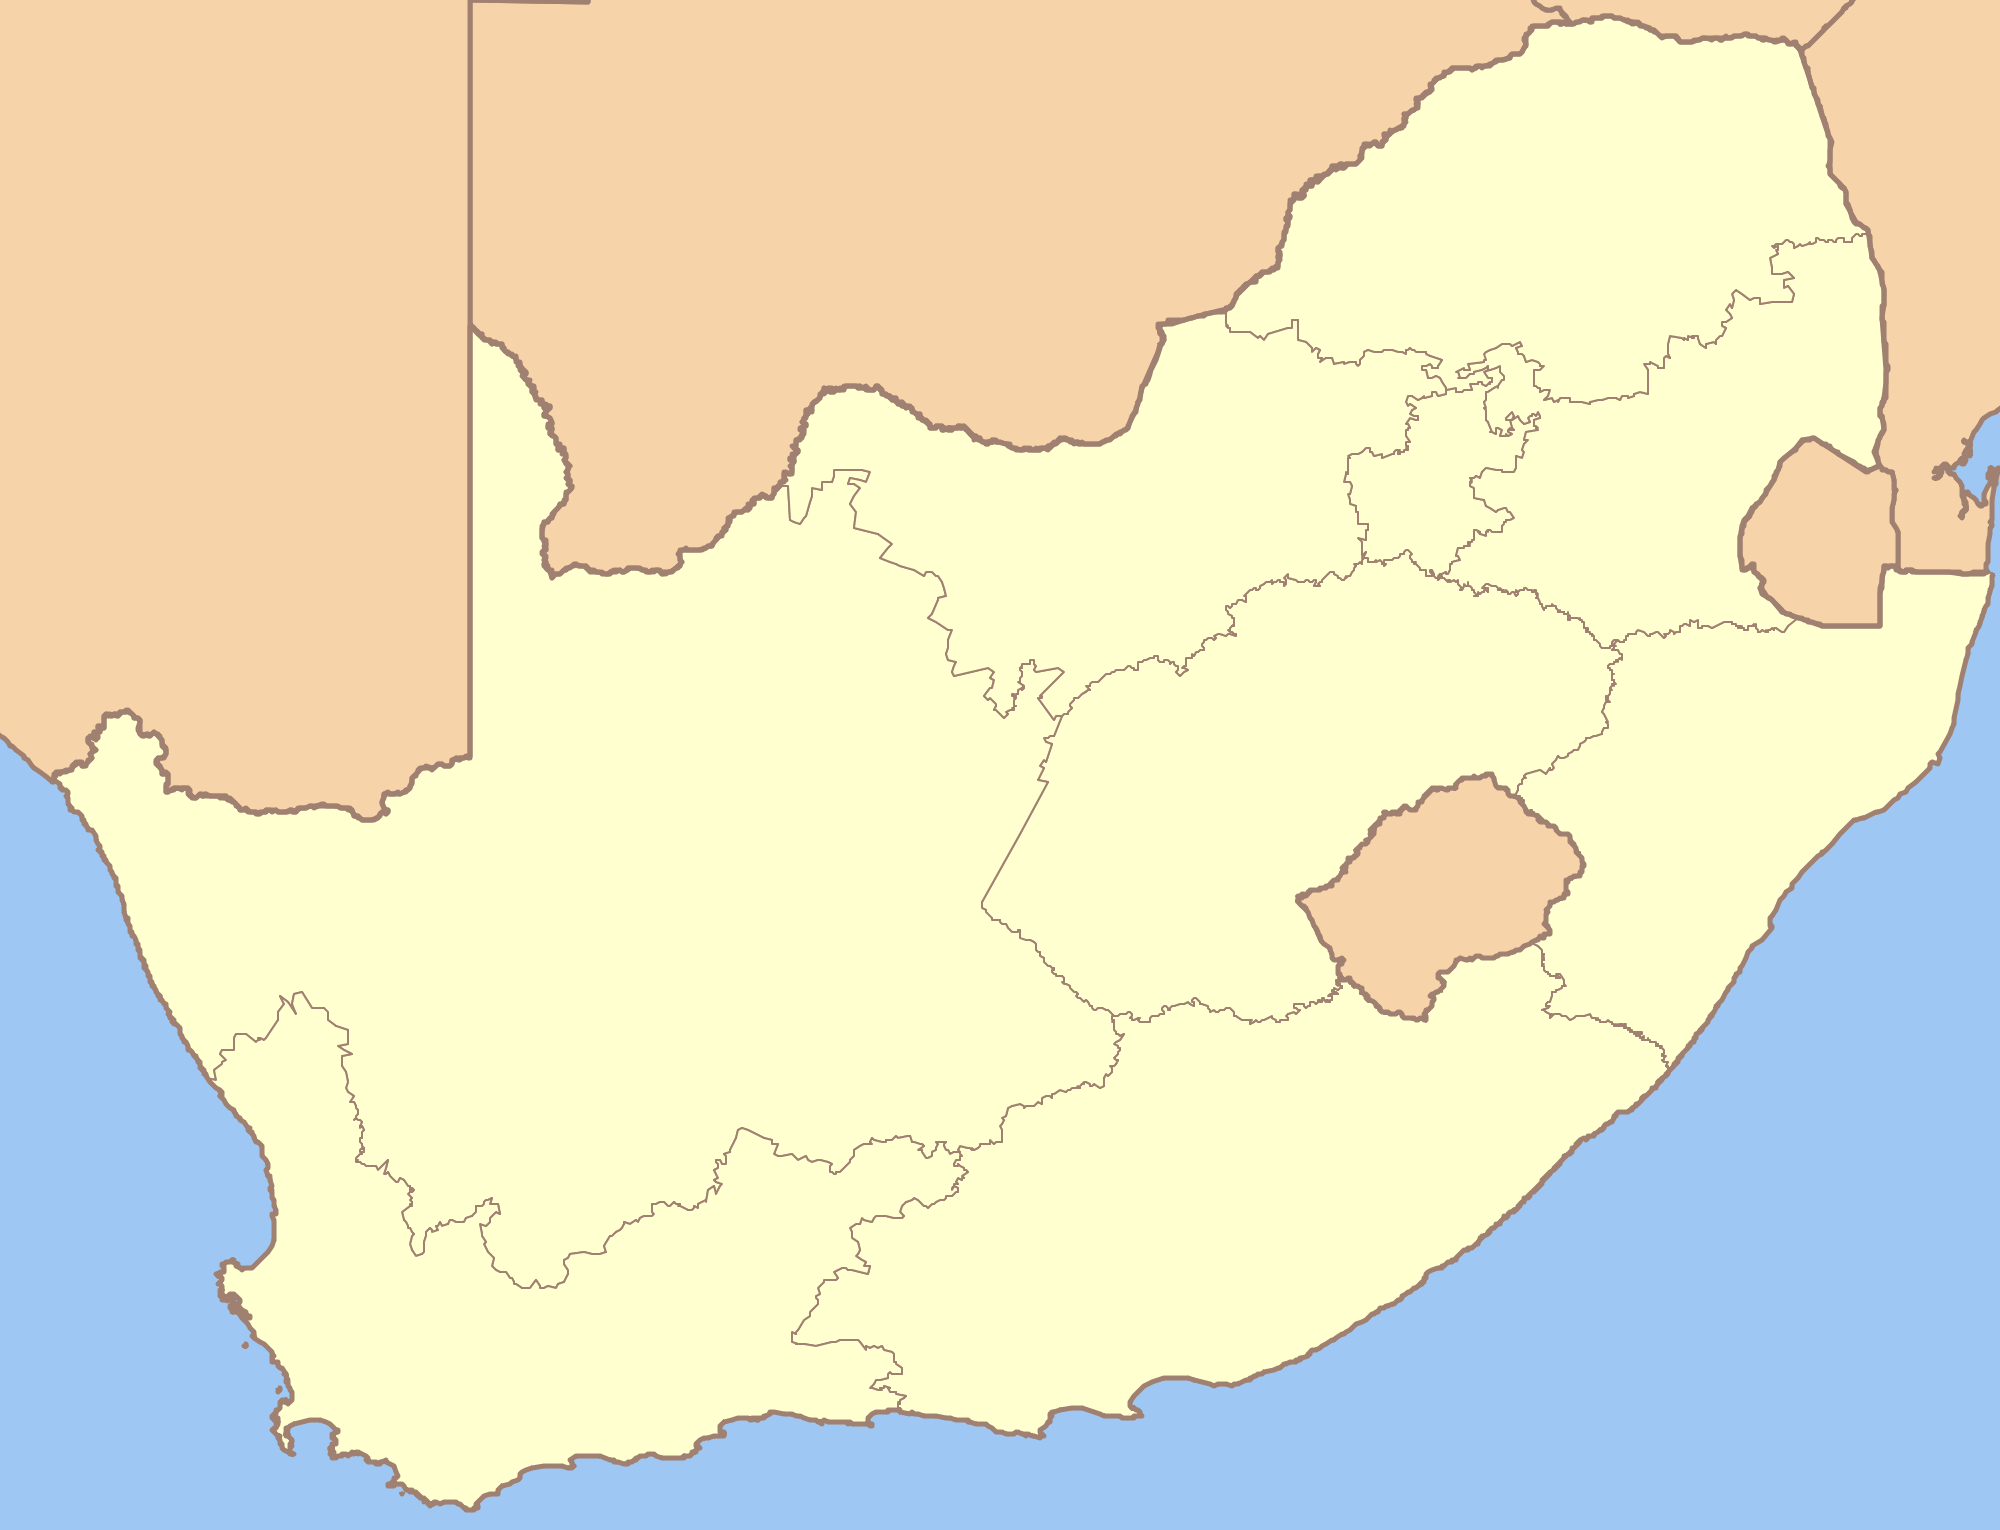 South Africa Blank Locator Map Mapsof Net